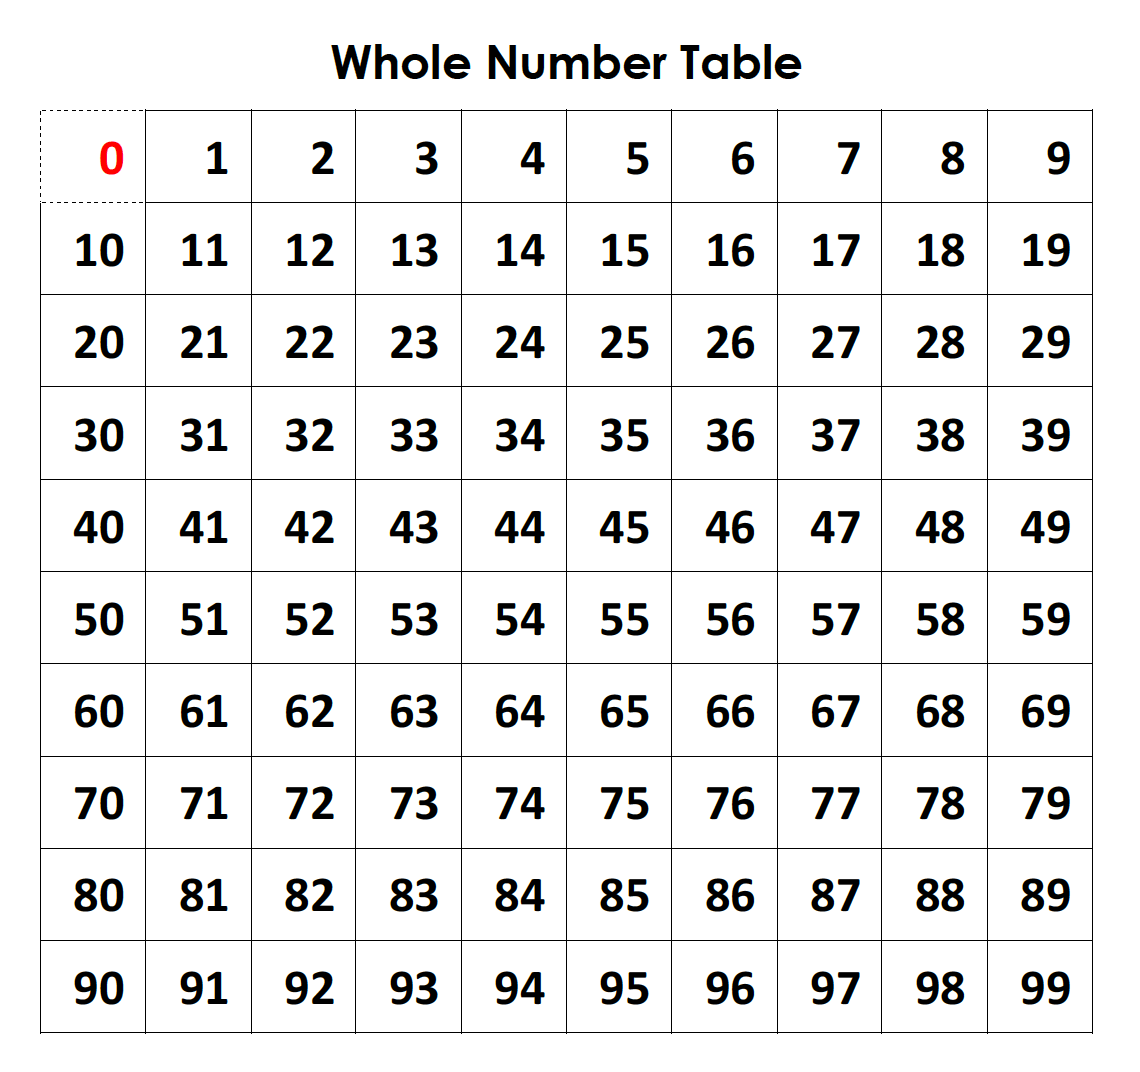 The Whole Number Table